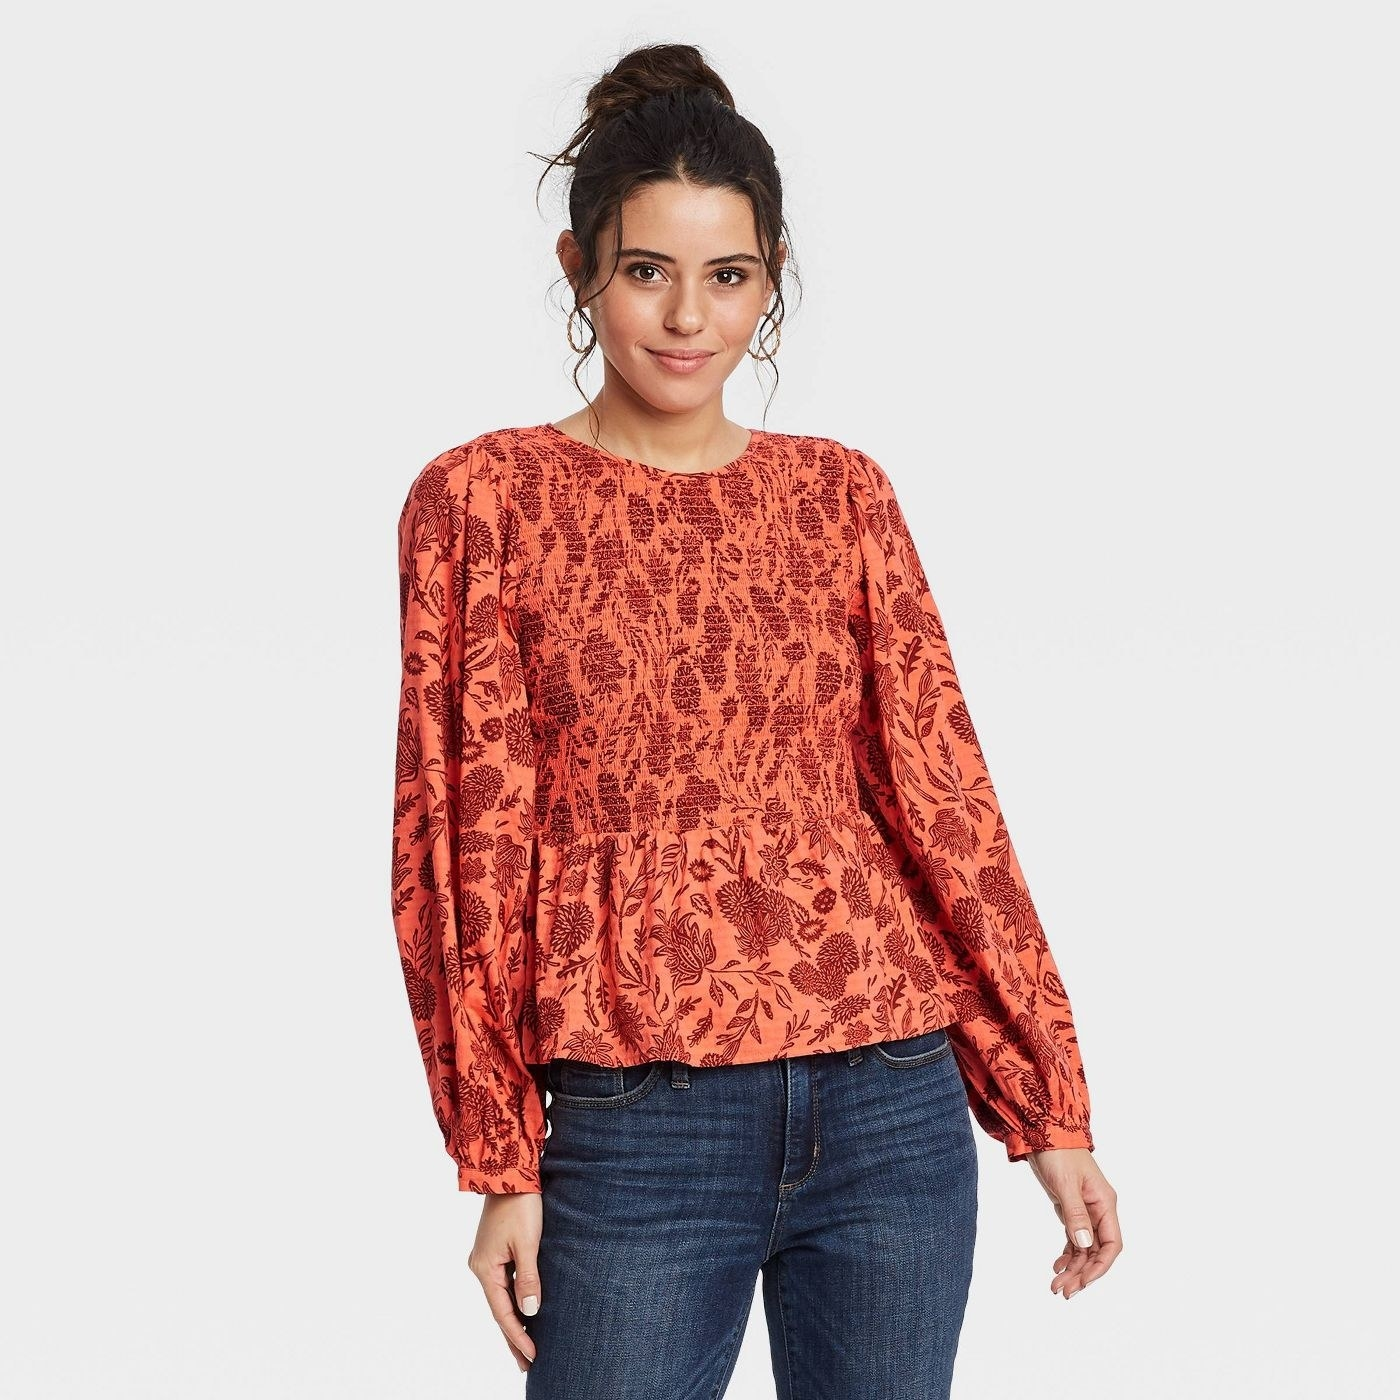 Model wearing orange top with a red floral pattern, stops at the waist